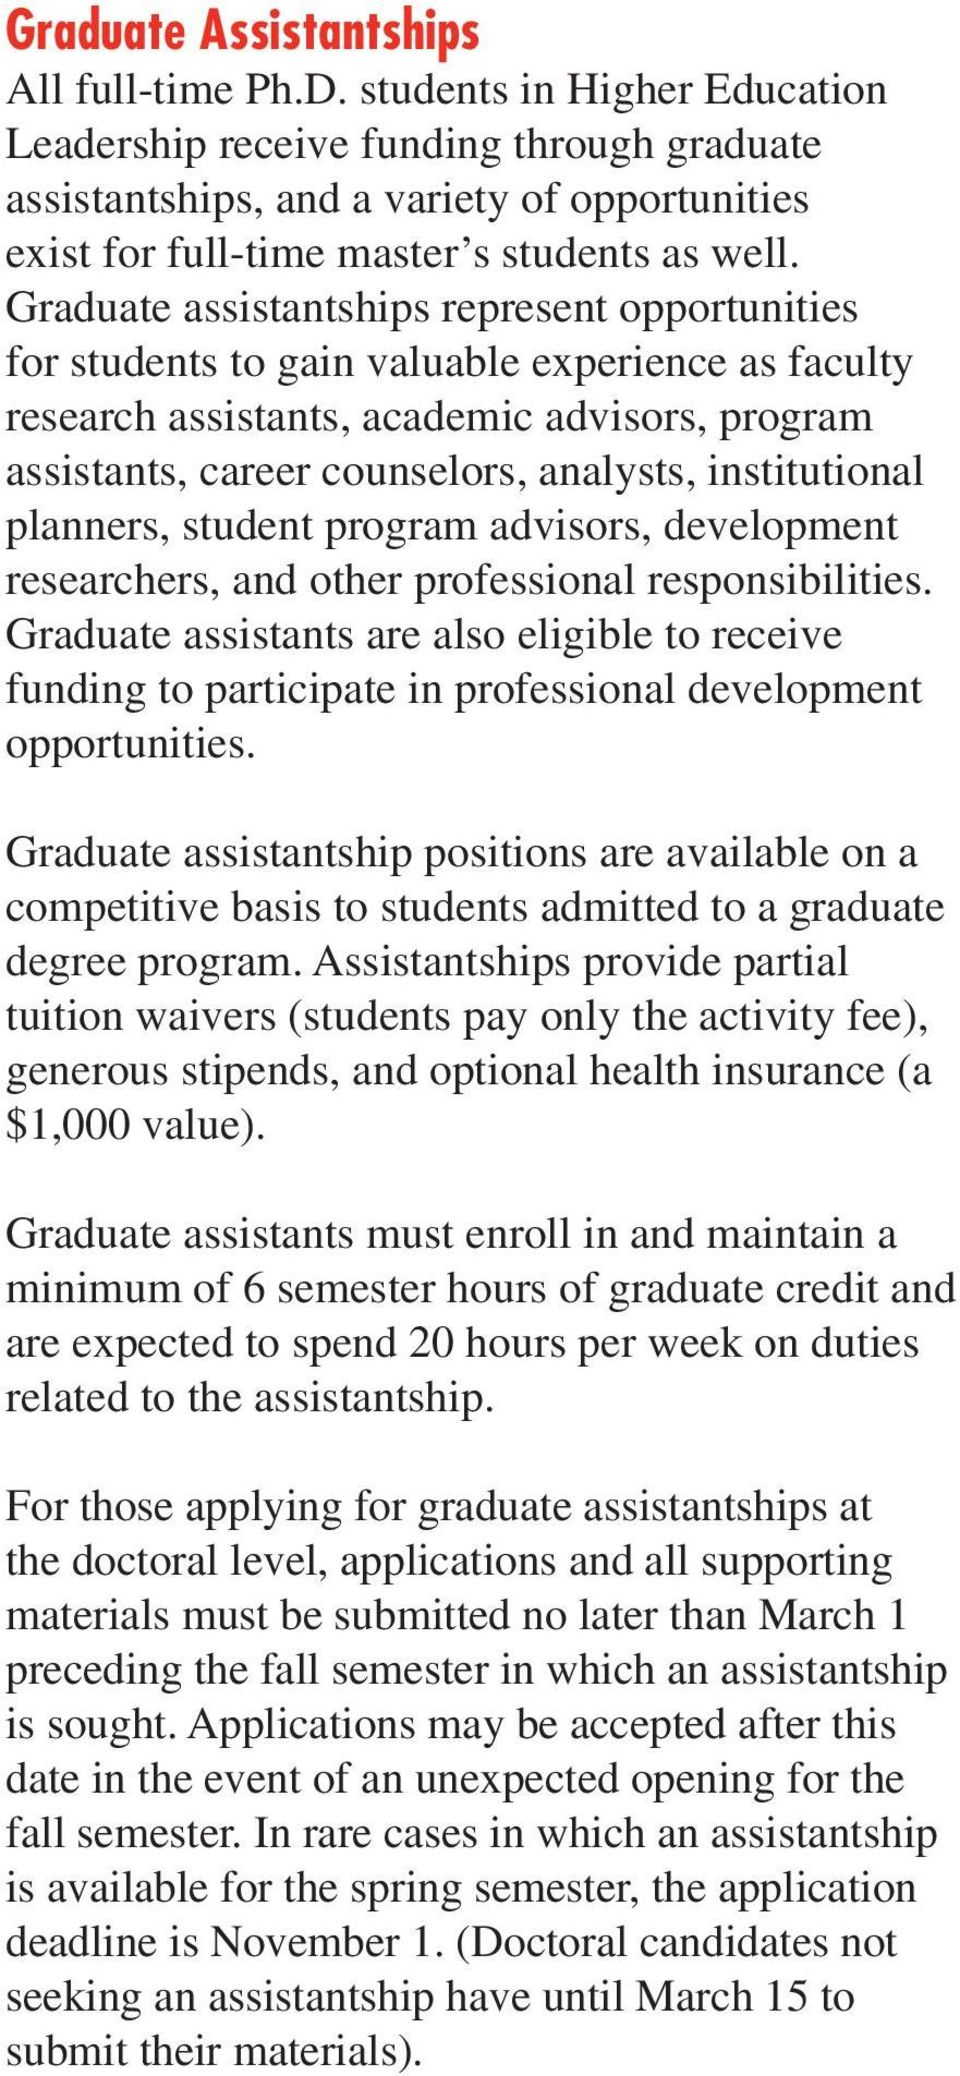 Graduate assistantships represent opportunities for students to gain valuable experience as faculty research assistants, academic advisors, program assistants, career counselors, analysts,